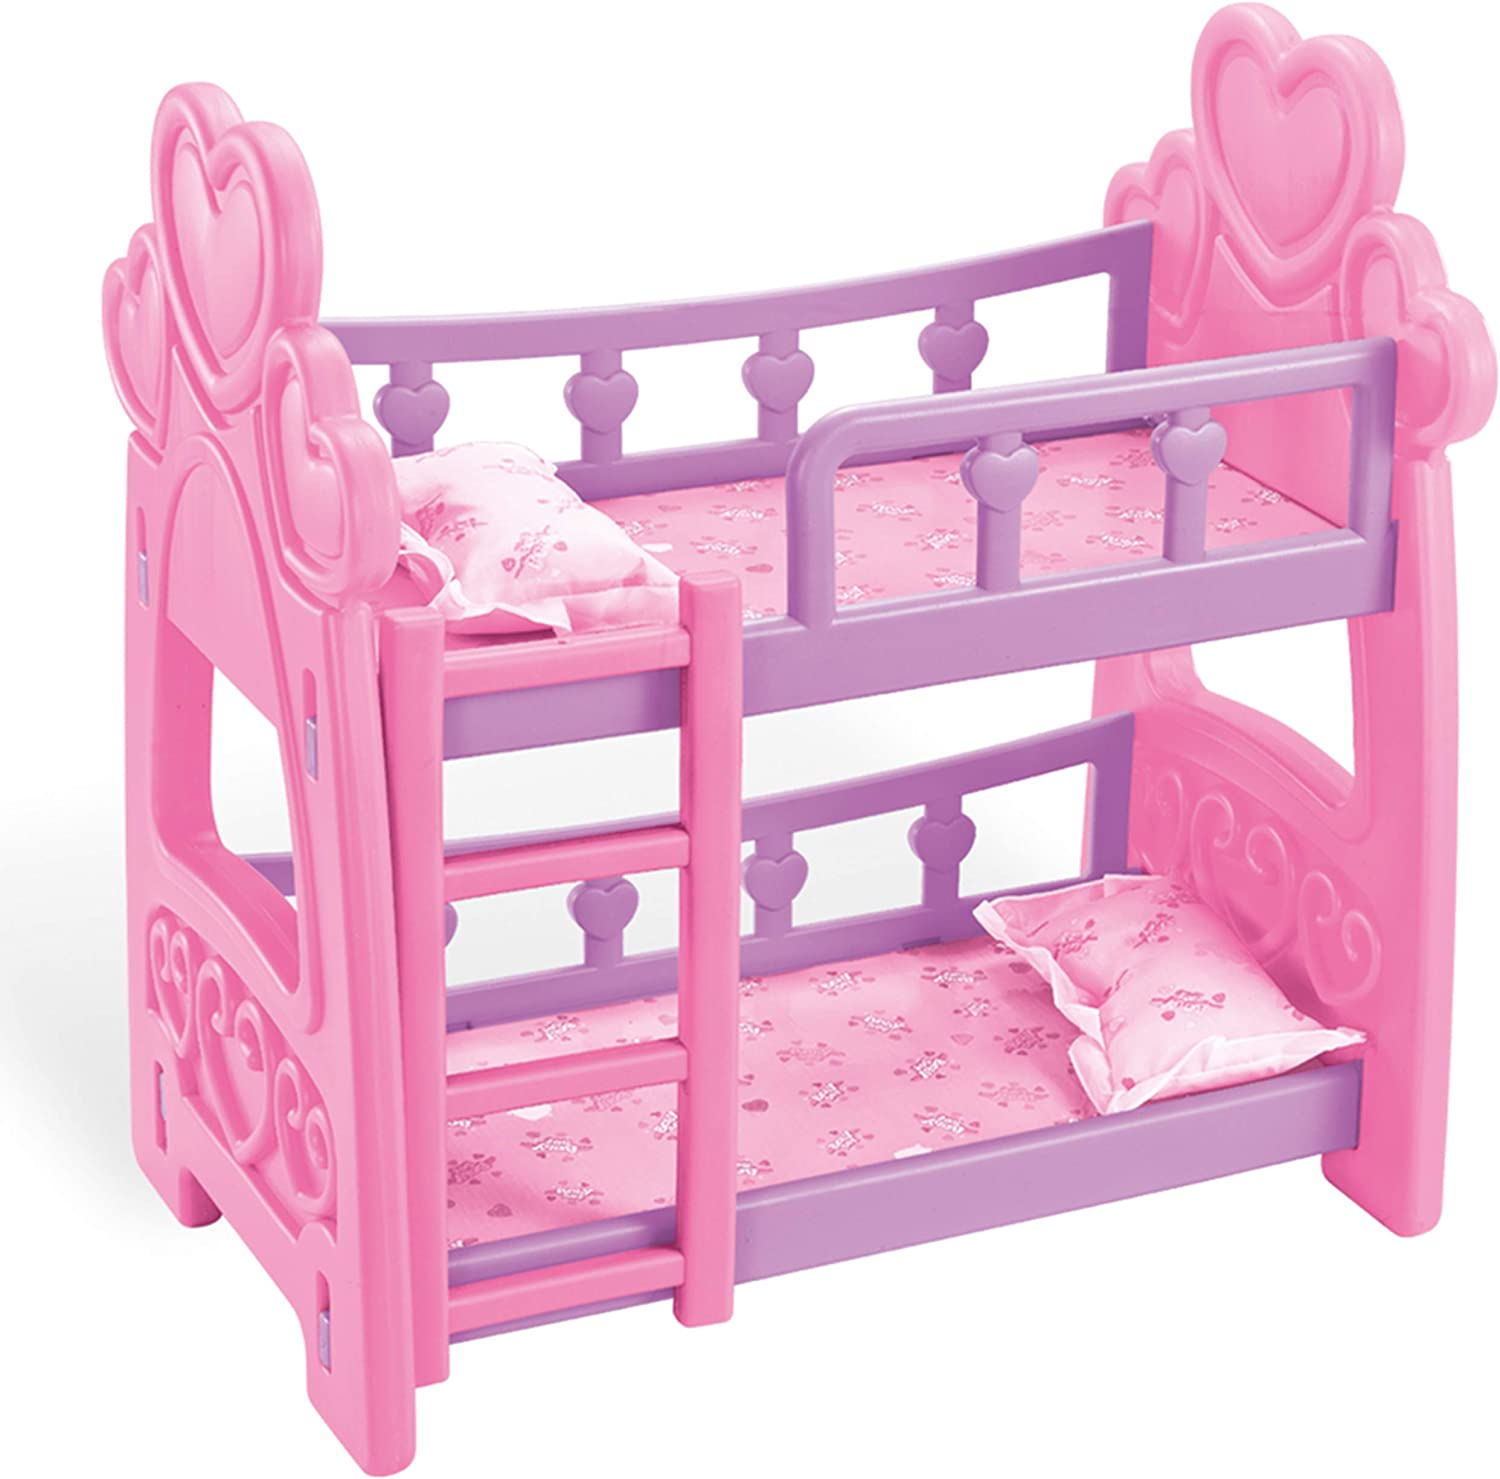 JOYIN Cute Baby Dolls Bunk Bed Set Furniture Toys for Kids and Toddlers Toys Including Ladder and Two Pillows